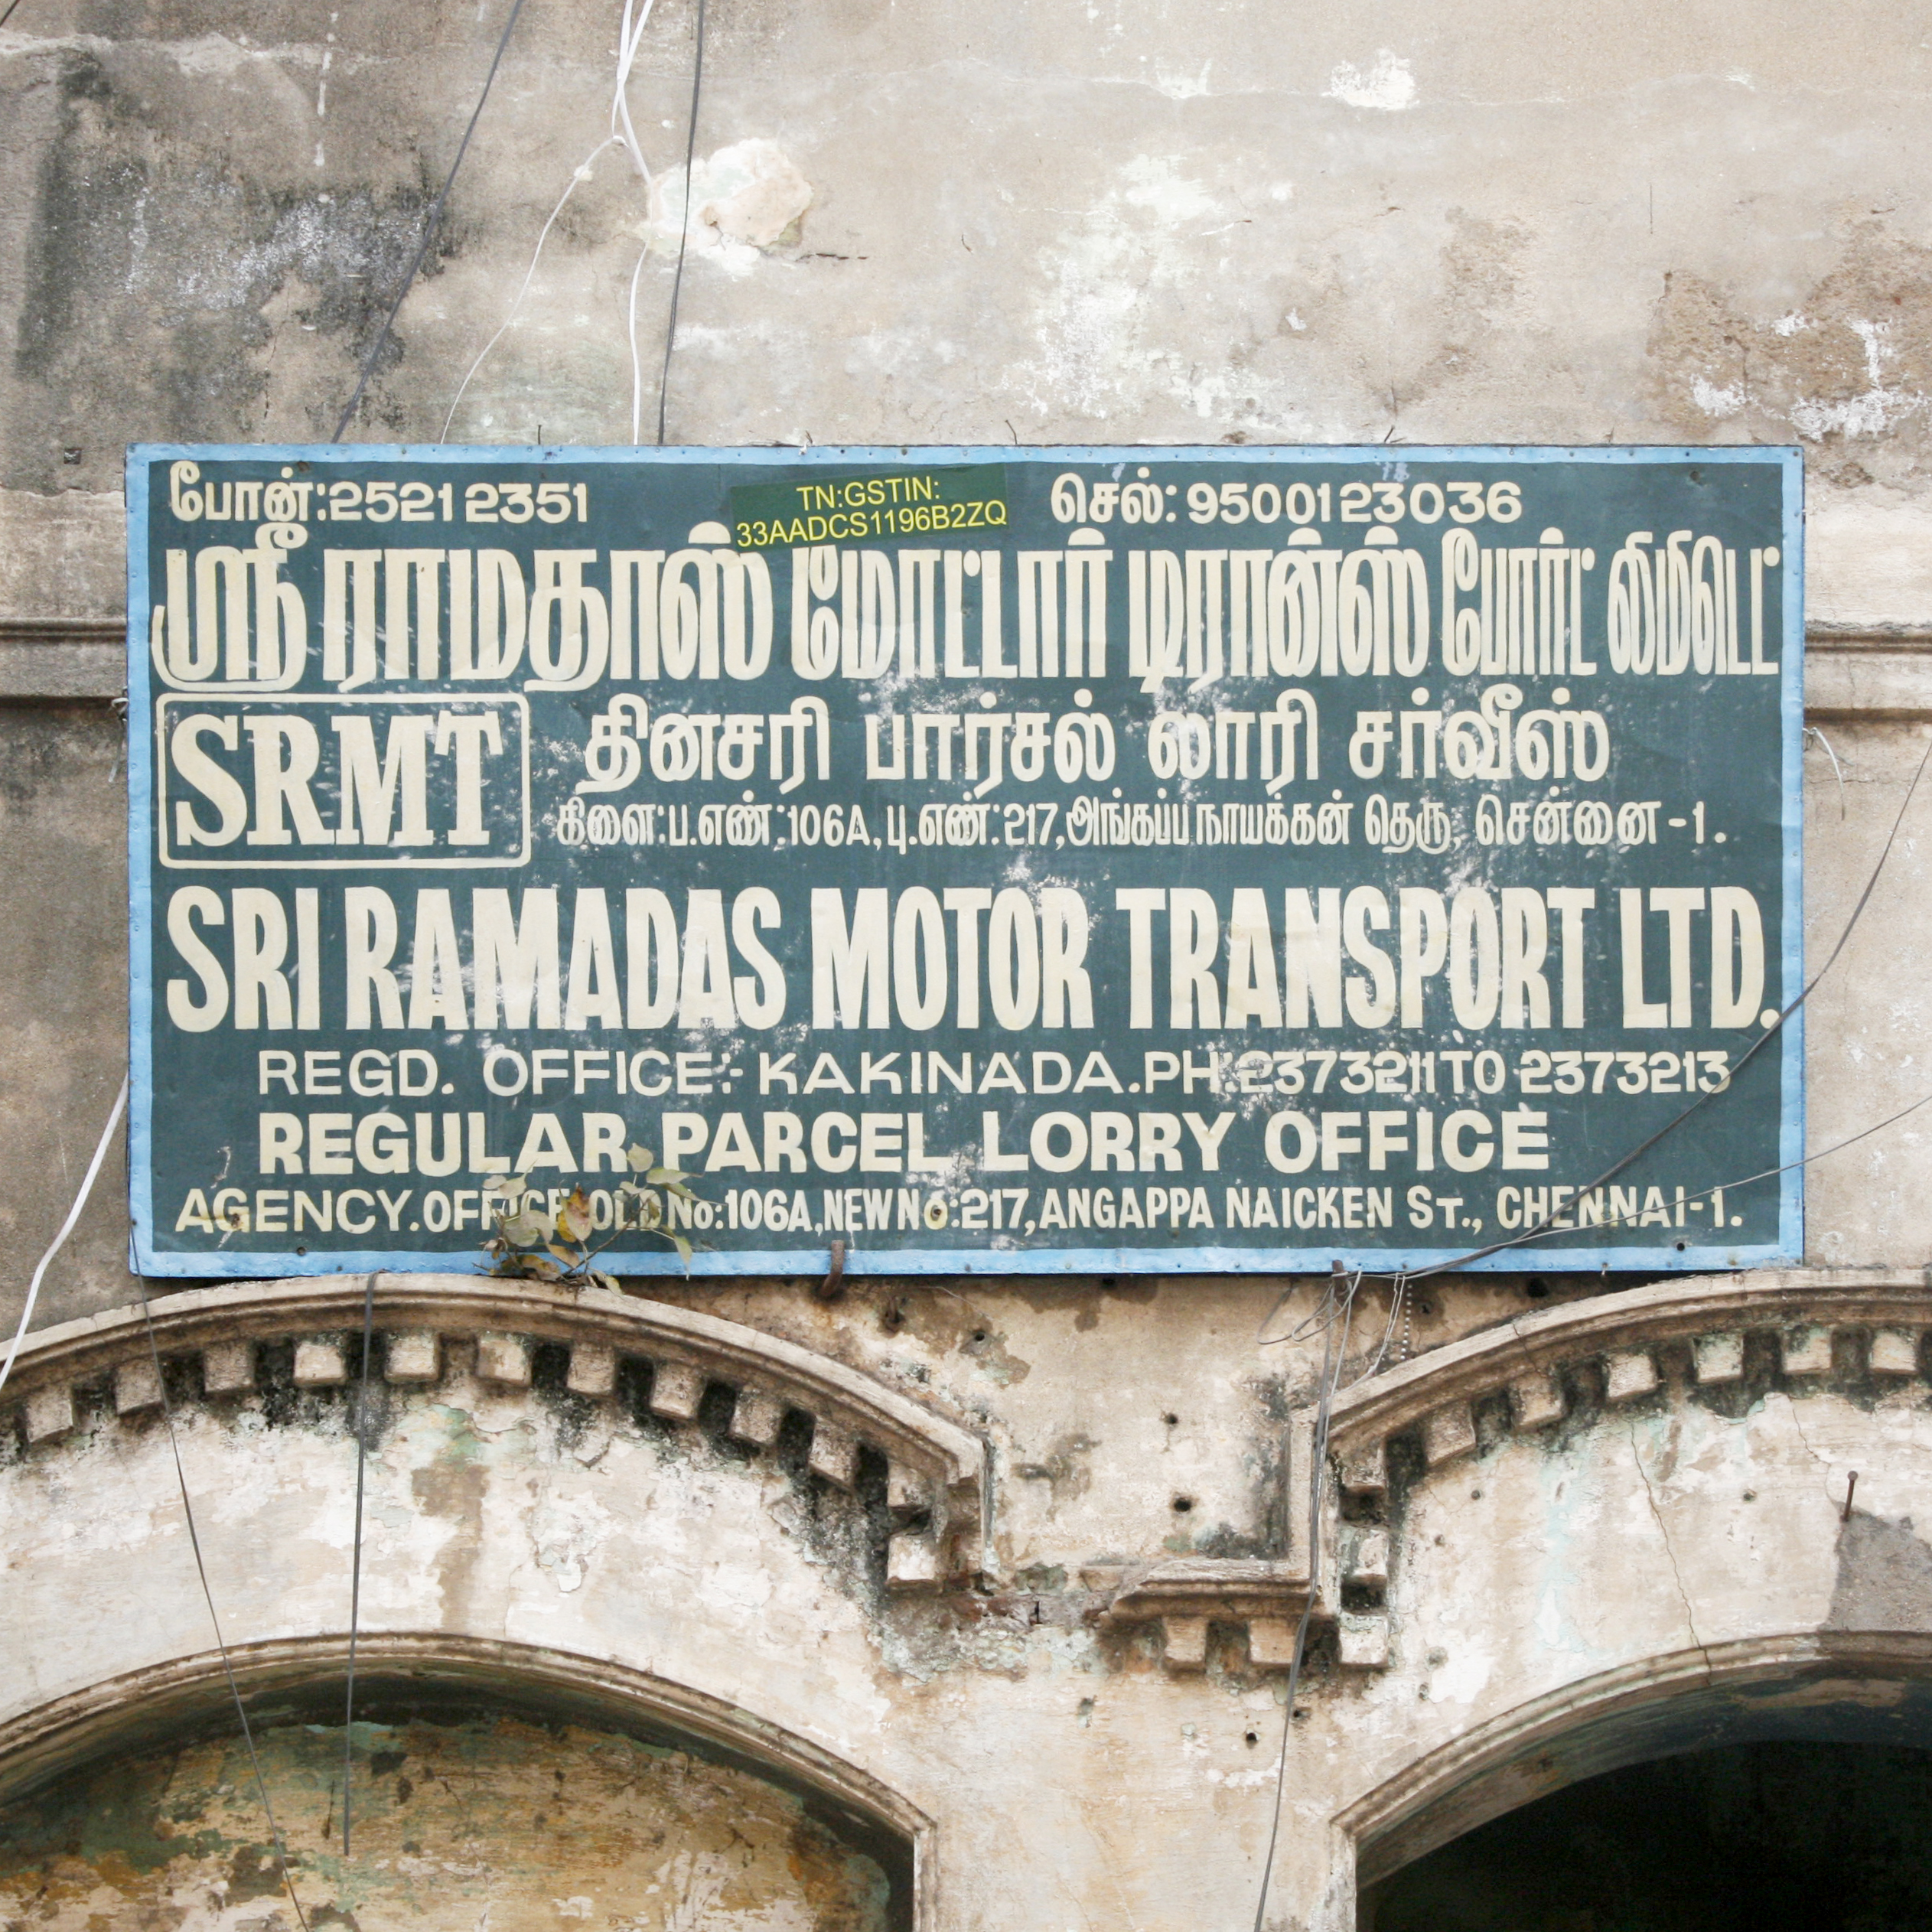 Sri Ramadas Motor Transport Ltd.